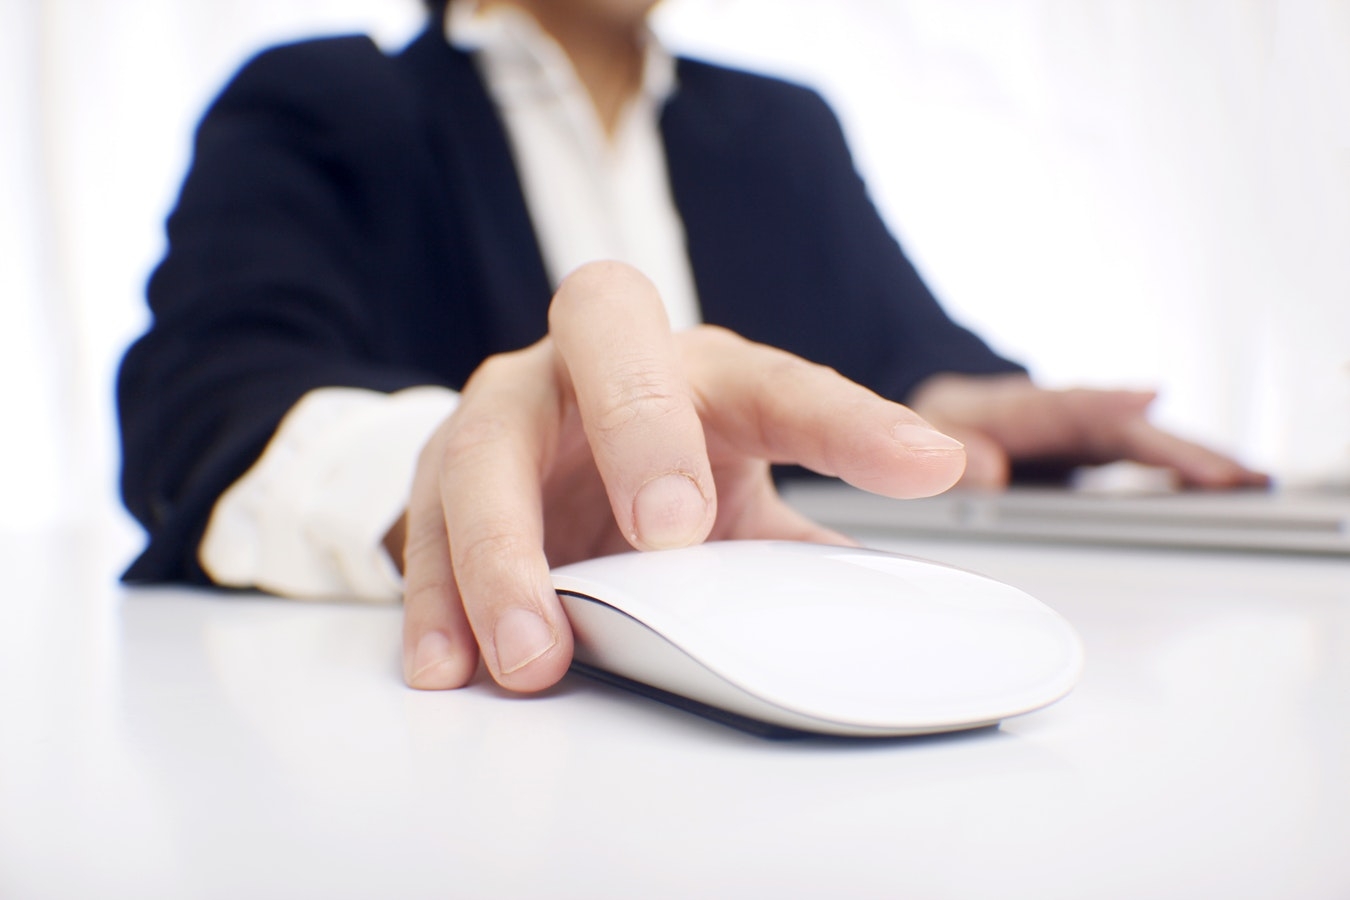 A person clicks on a wireless mouse.